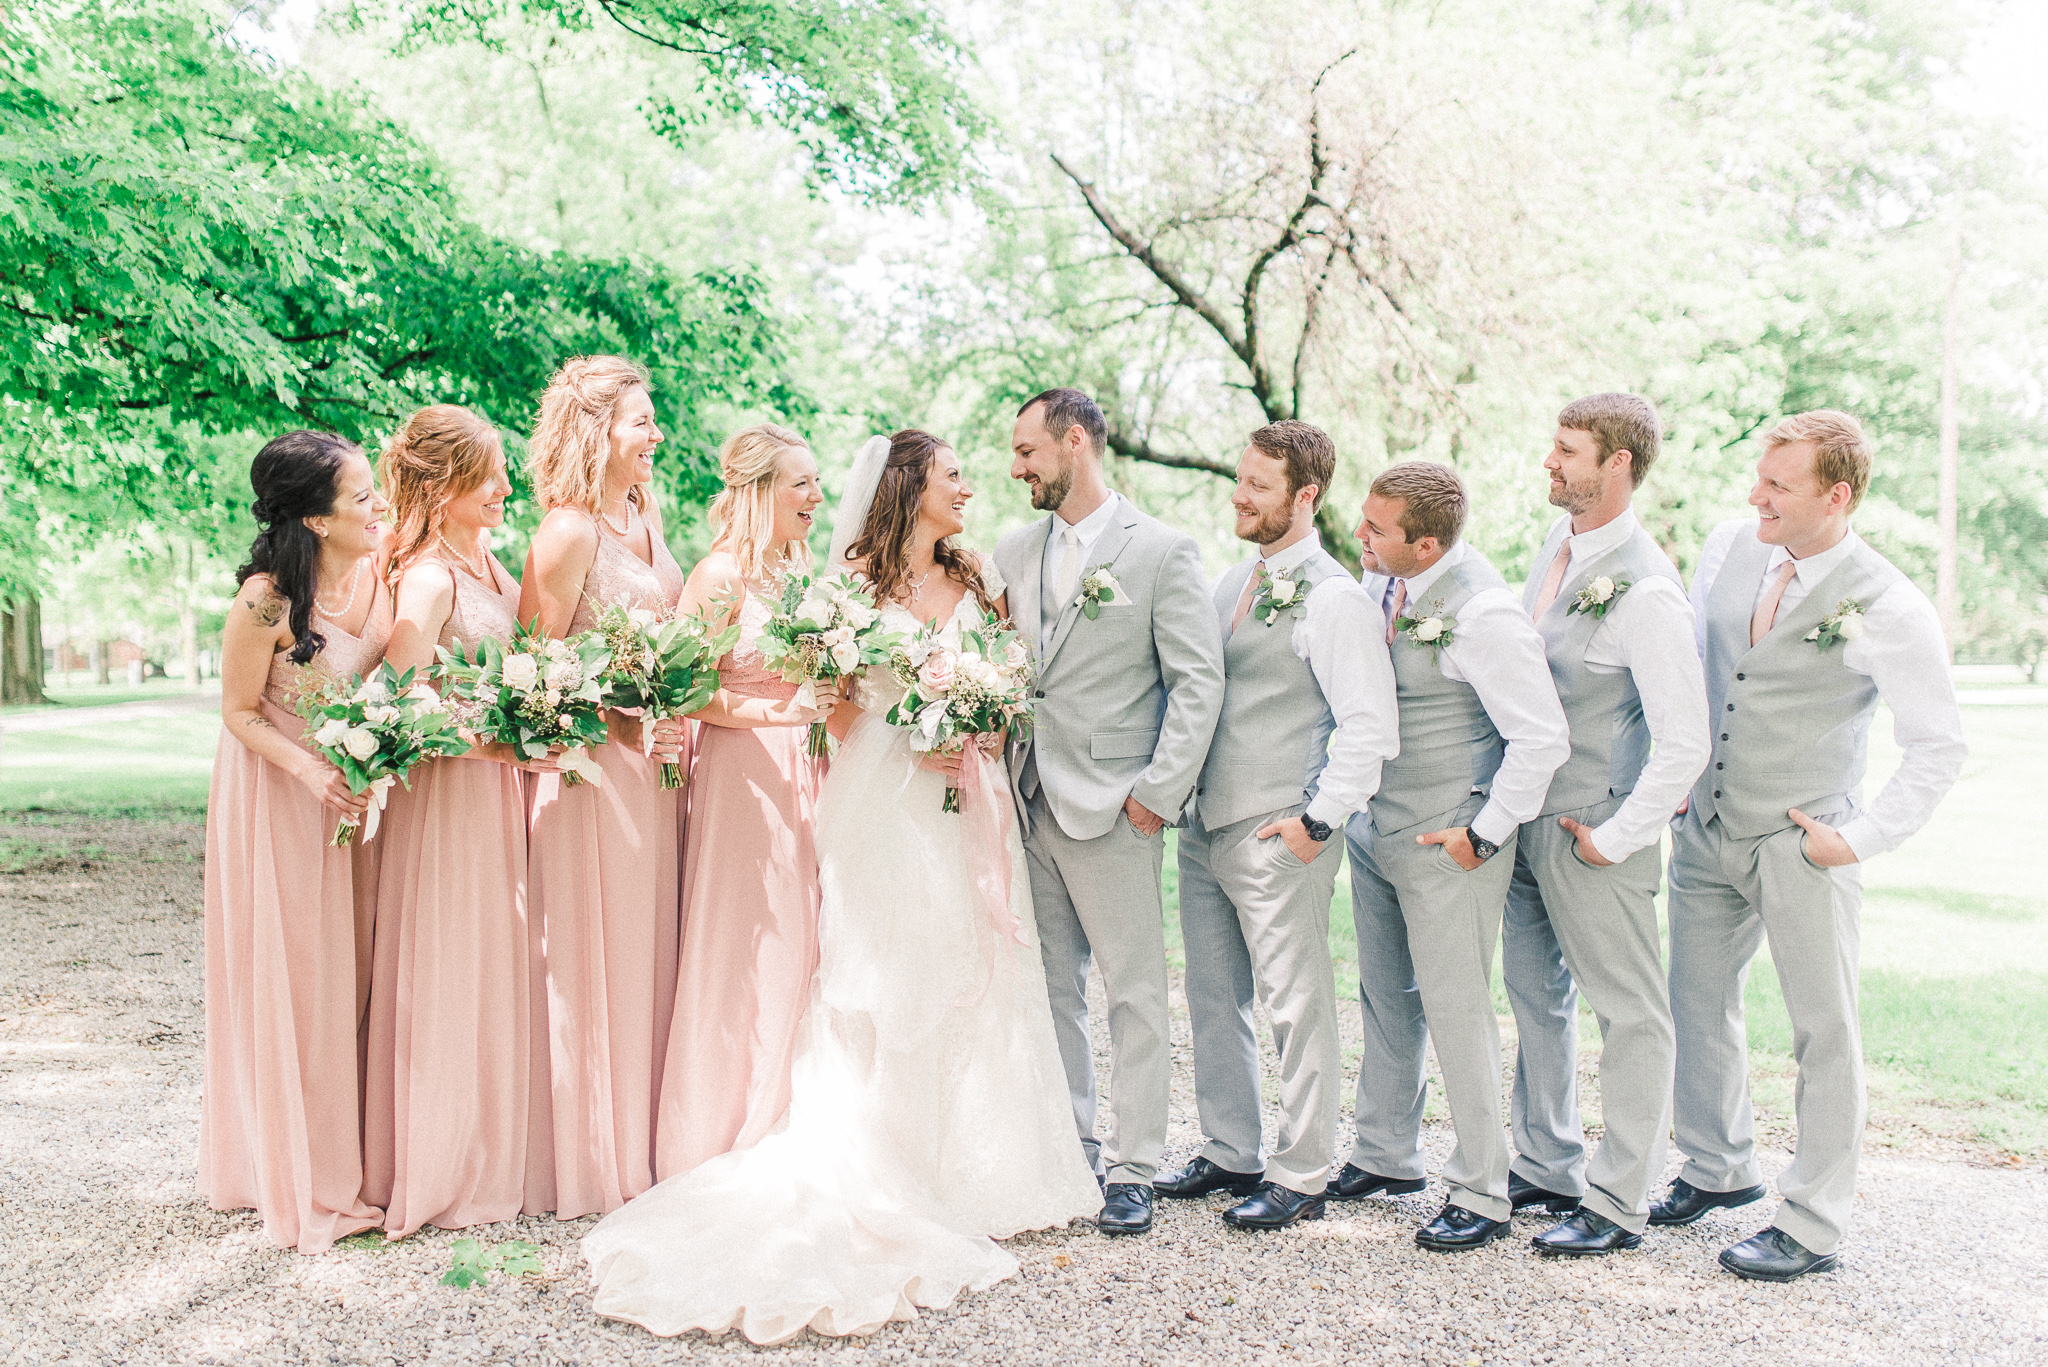 Stephanie + Brody | An Elegant Dusty Rose Wedding at the Rustic Legacy Barn in Kokomo | Indianapolis Wedding Photographers